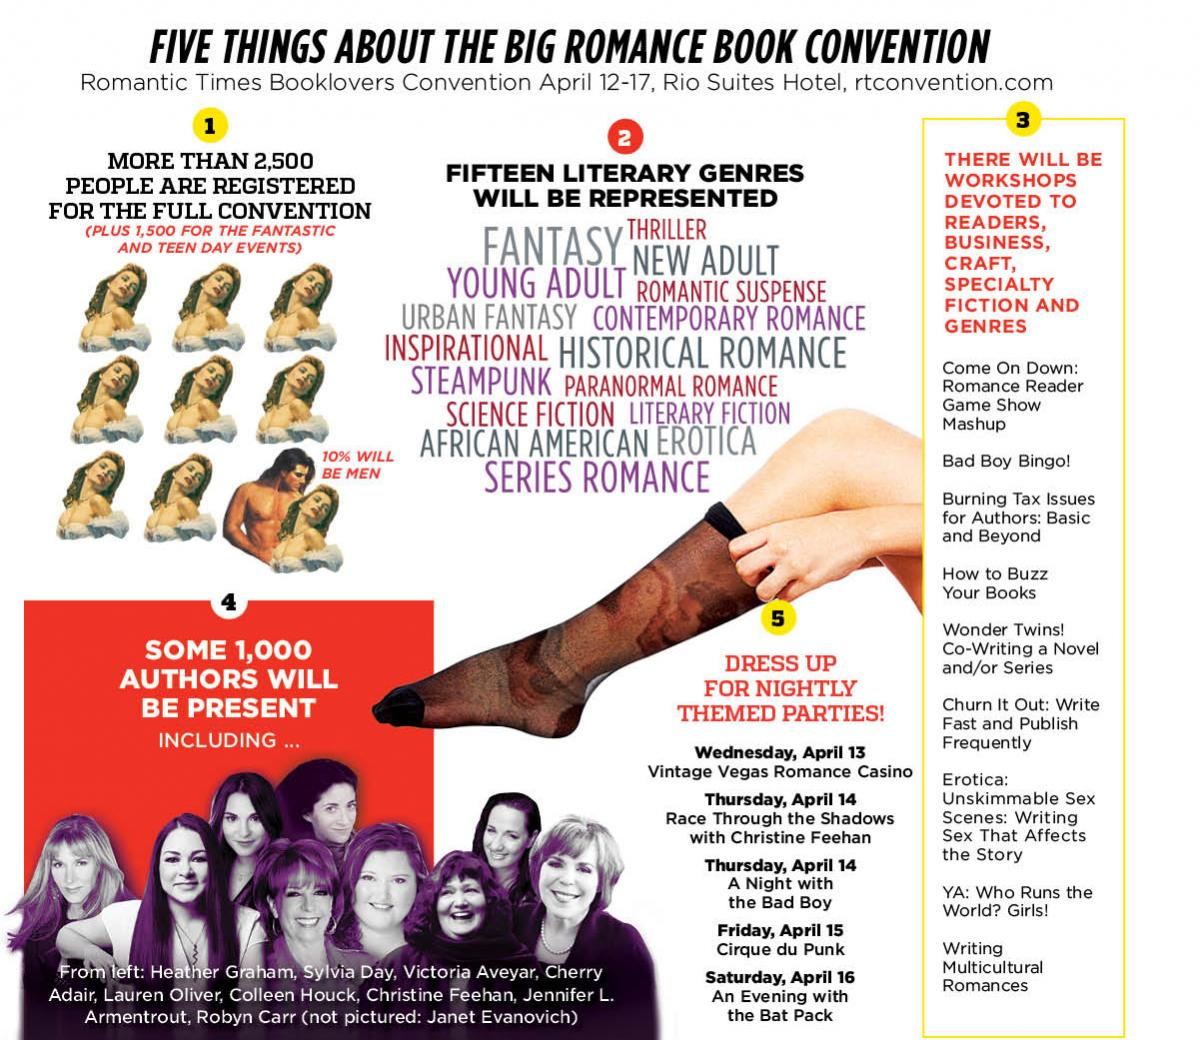 Five things about the big romance book convention